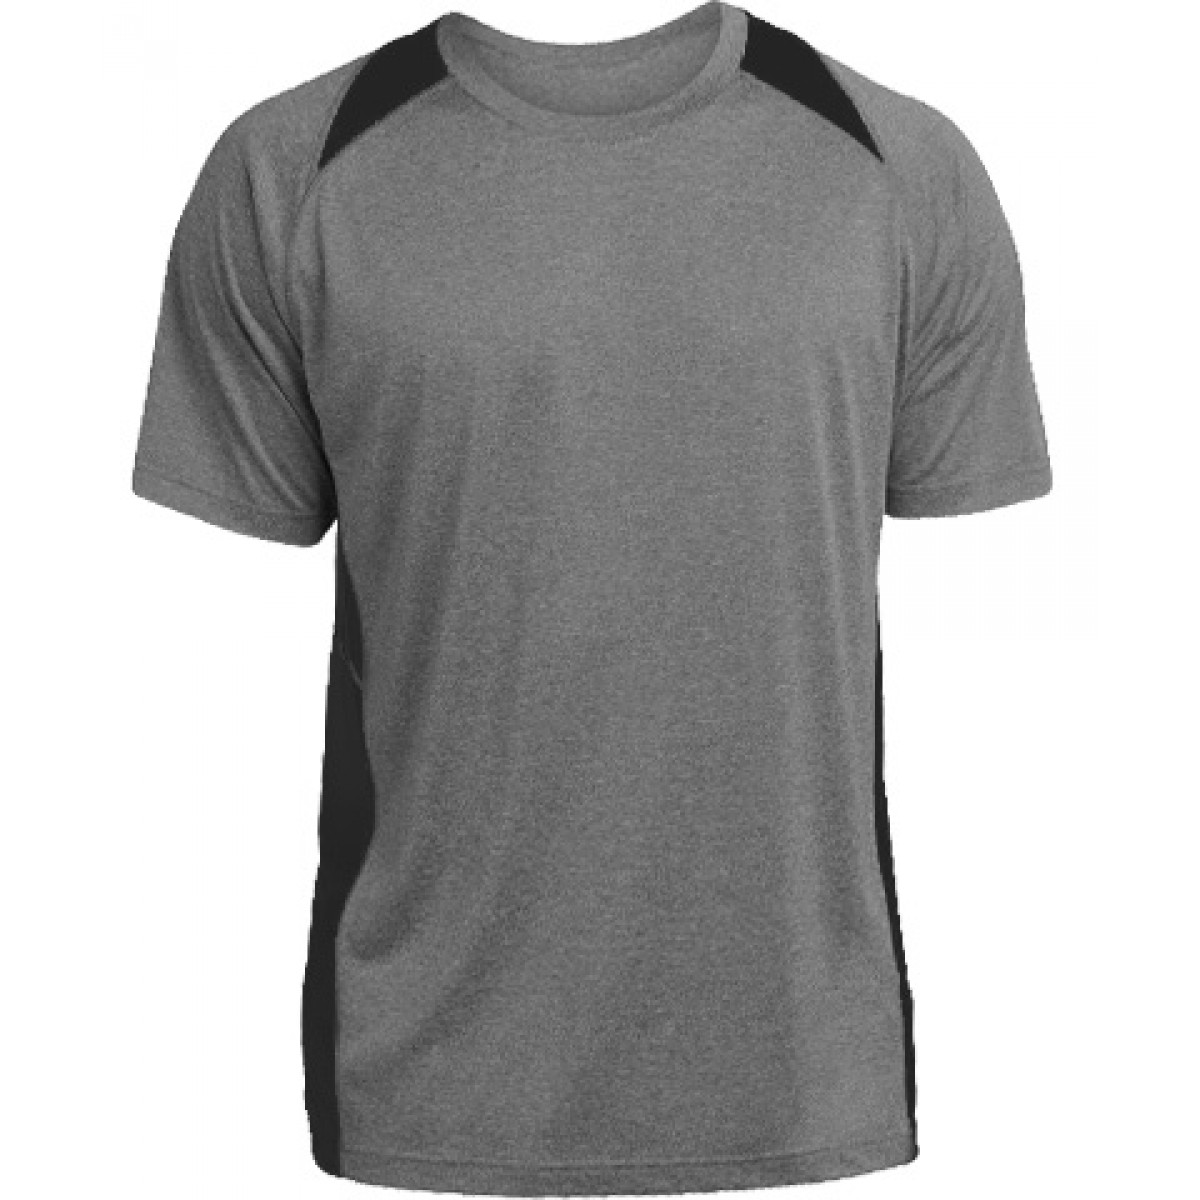 Heather Colorblock Contender™ Tee-Gray/Black-S